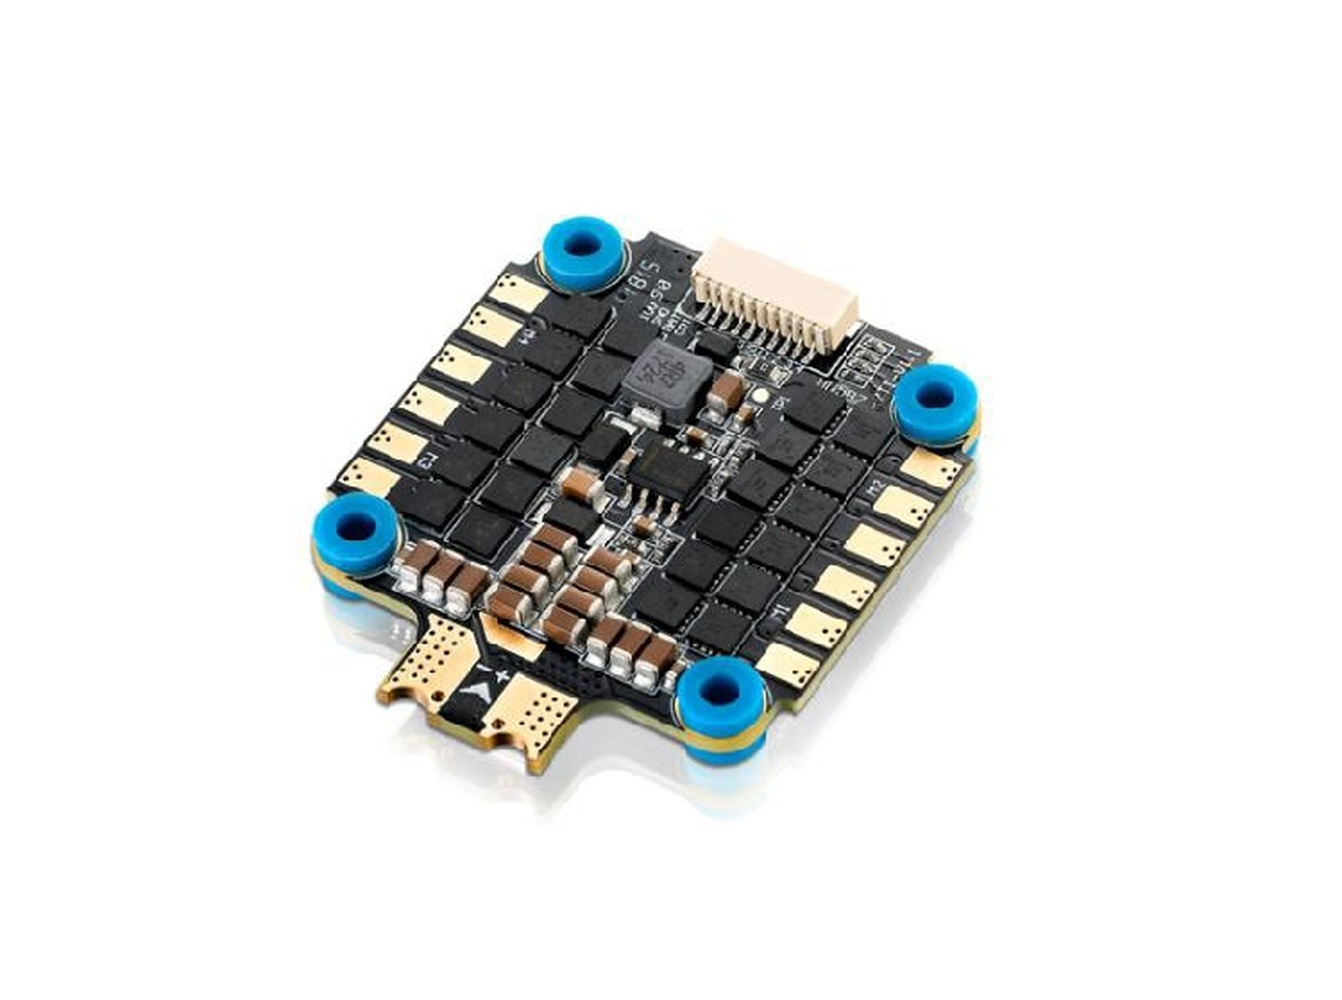 F-Cloud Good Surplus Hobbit Wing Xrot or Micro F4 G2 Flight Control 45a 4in 1 Bl Heli 32 Electric Switch